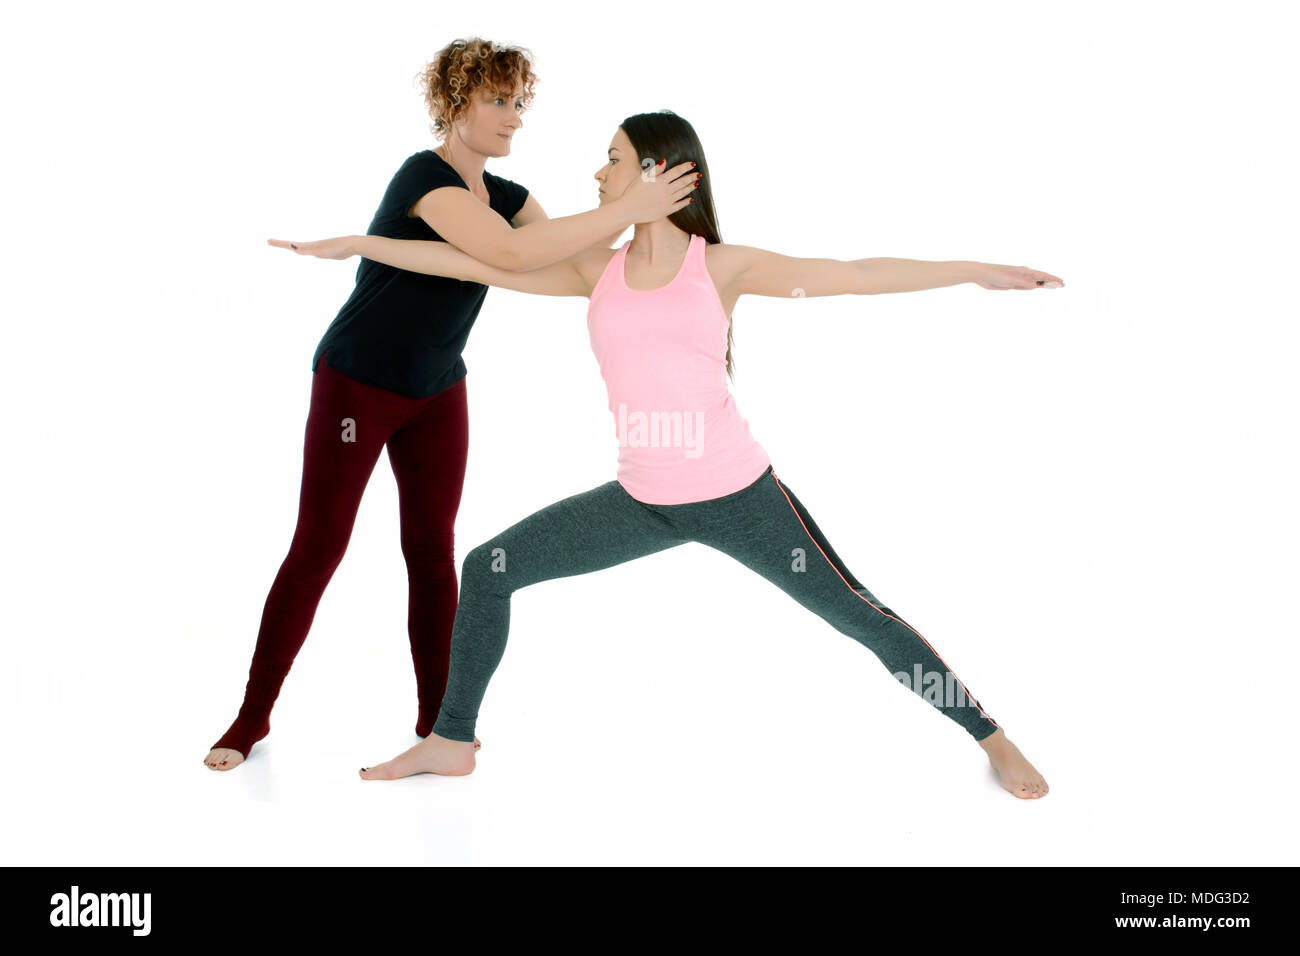 Yoga teacher shows how to put a young white girl in the Yoga position Warrior Pose, on sanskrit Virabradasana. Stock Photo